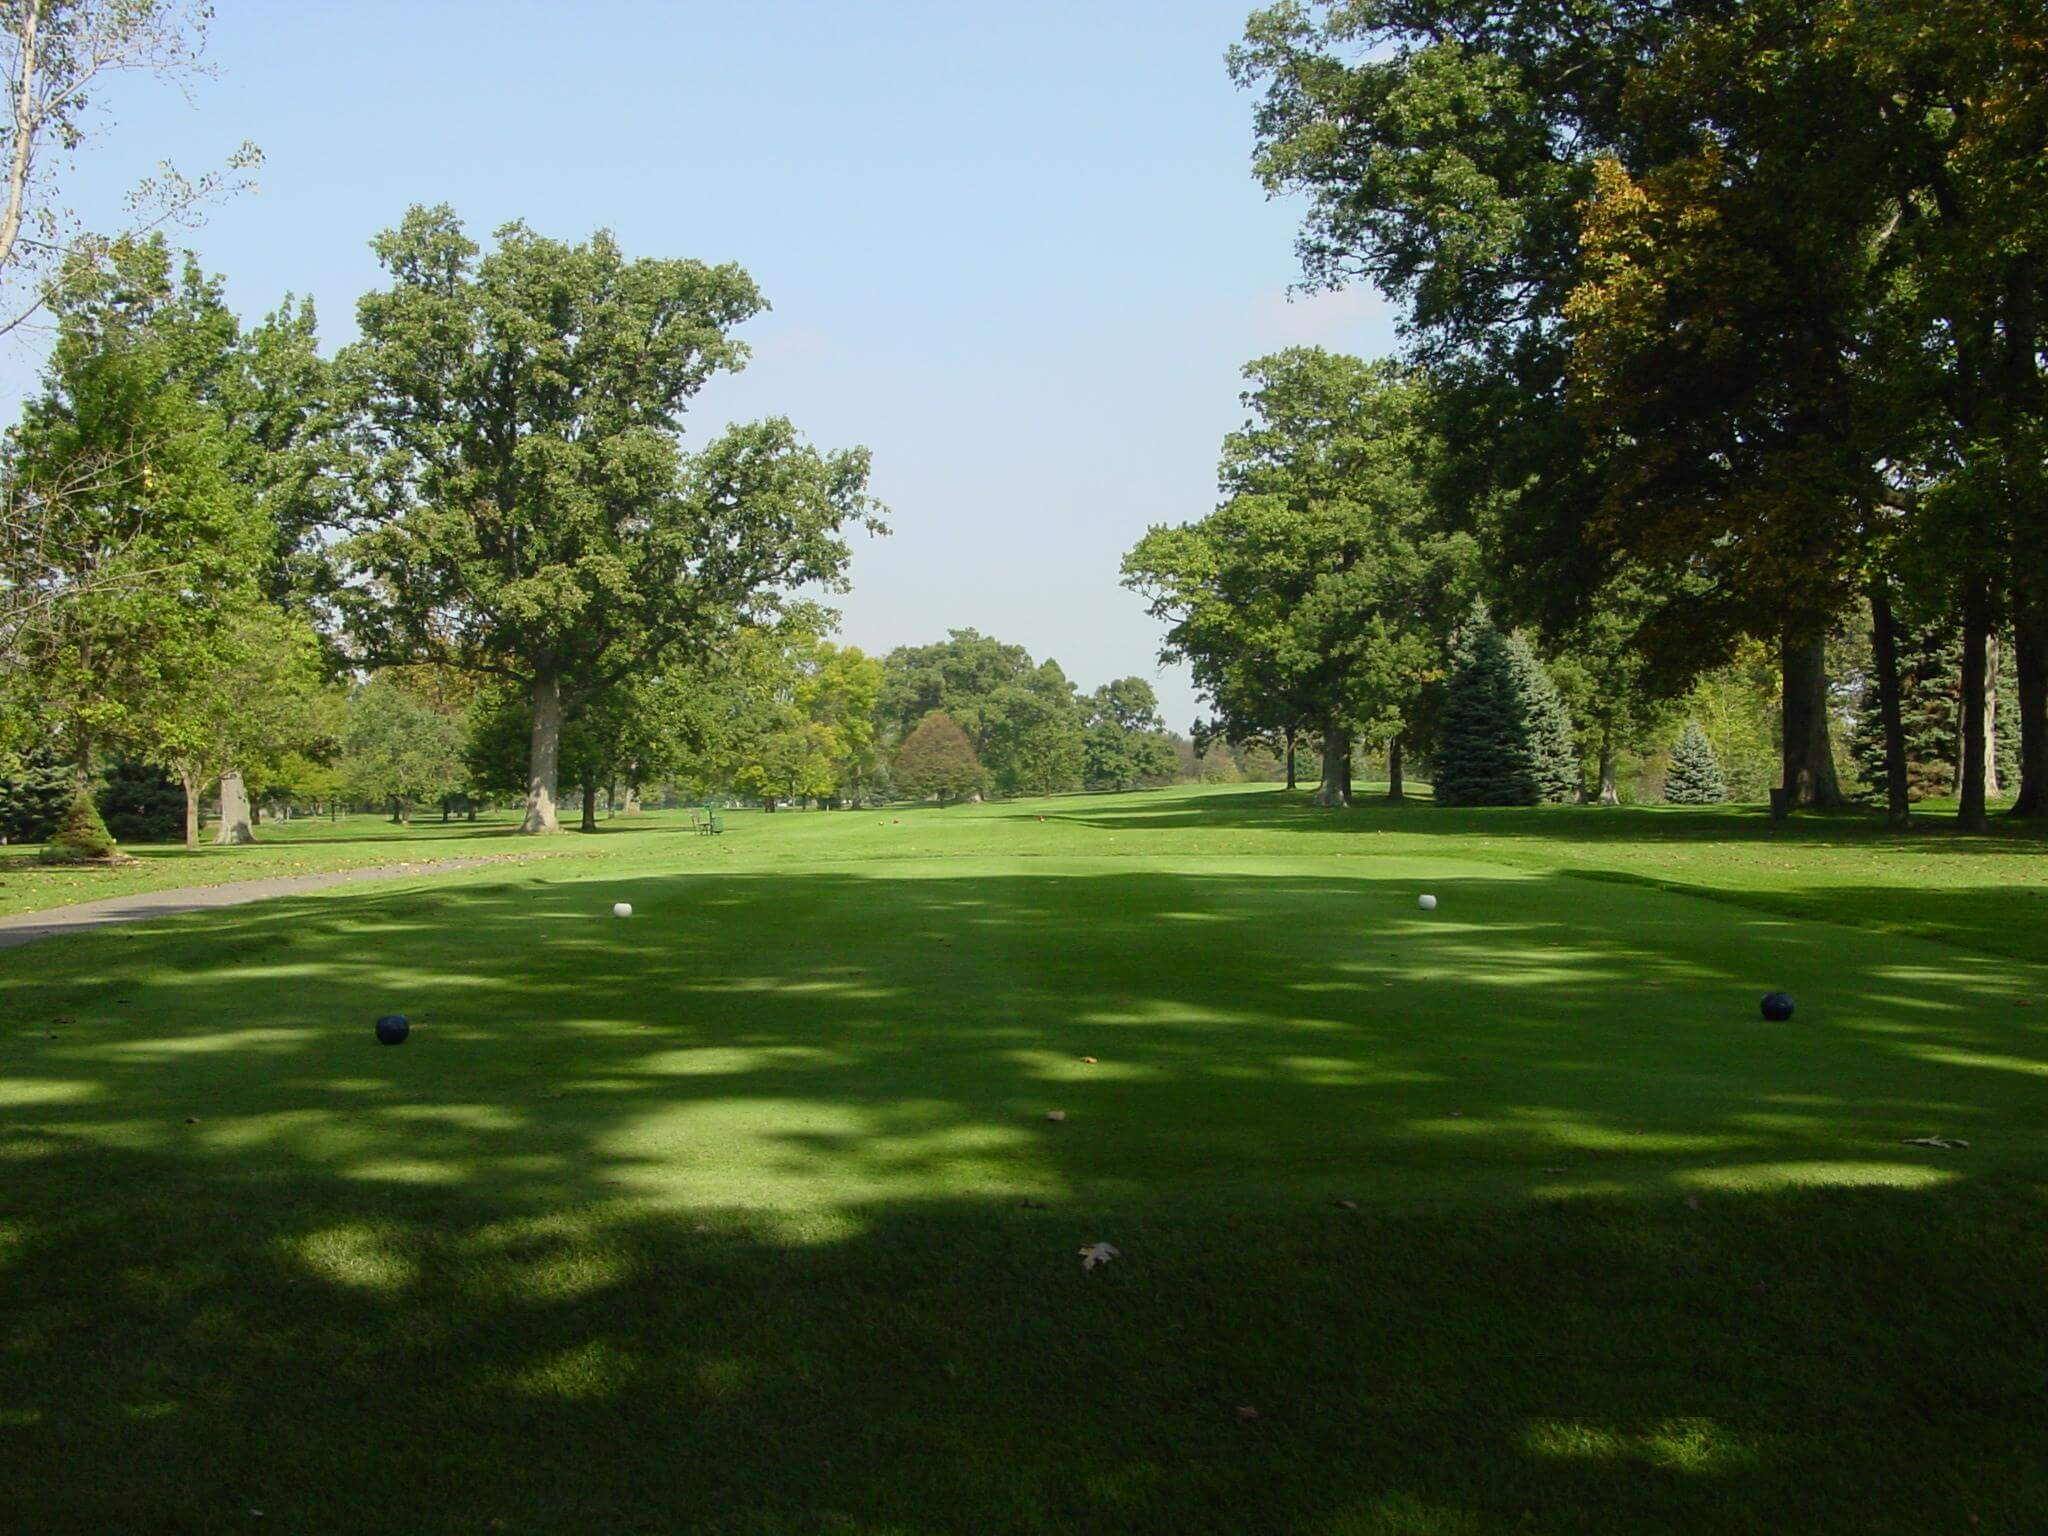 Hole 10 on the golf course